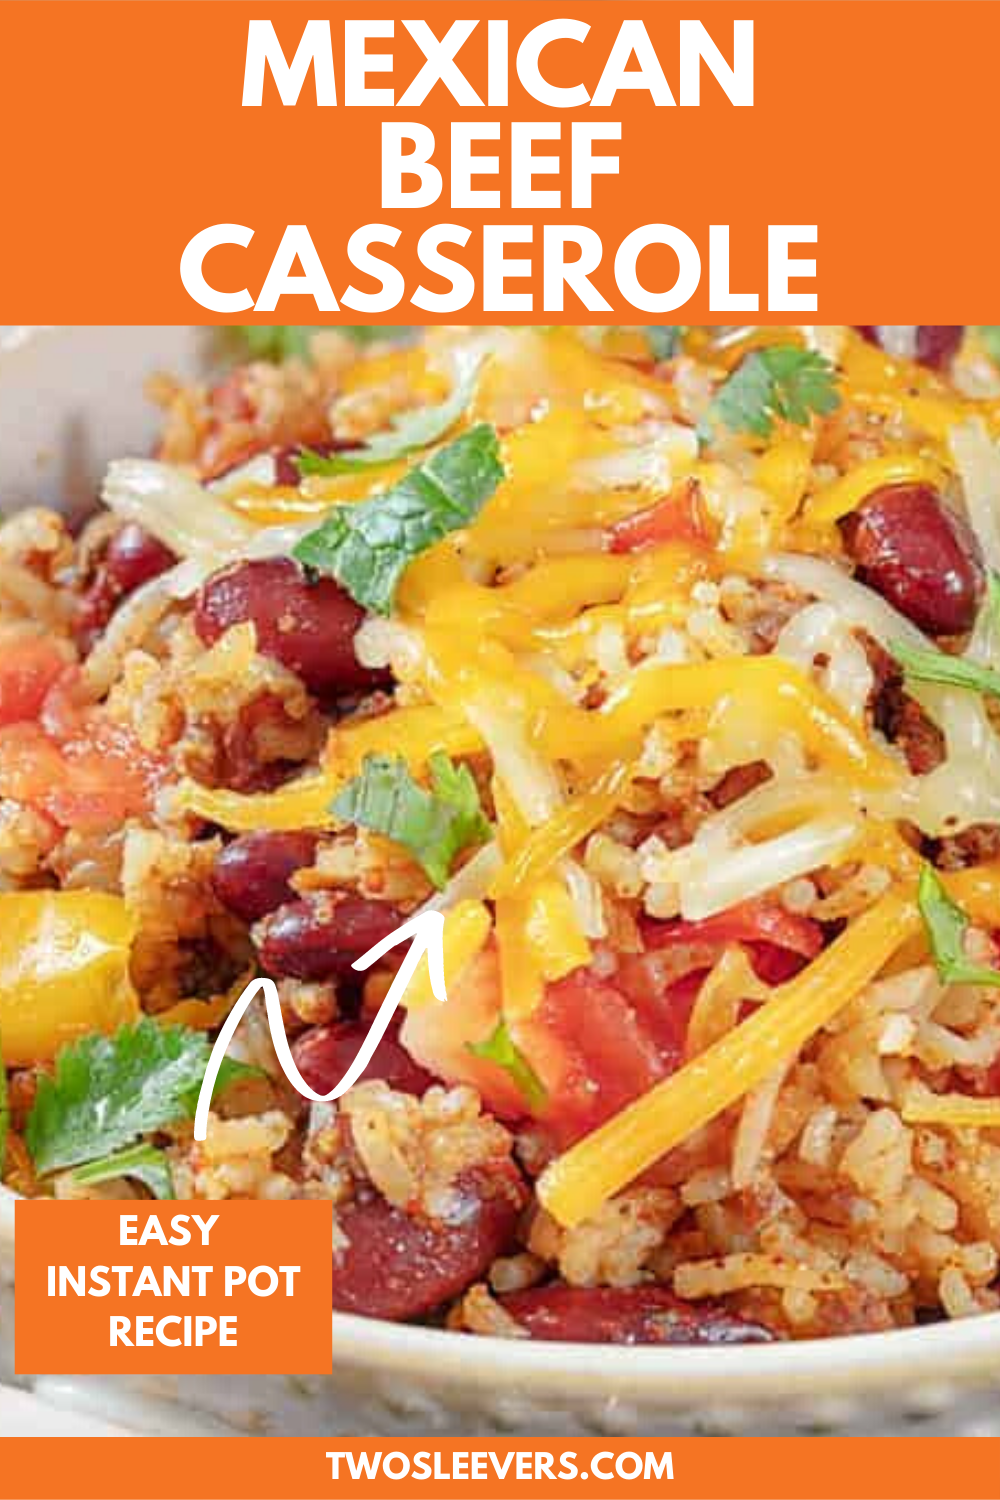 Mexican Ground Beef Casserole Made Easily In Your Instant Pot In 2020 Mexican Ground Beef Casserole Ground Beef Casserole Easy Instant Pot Recipes